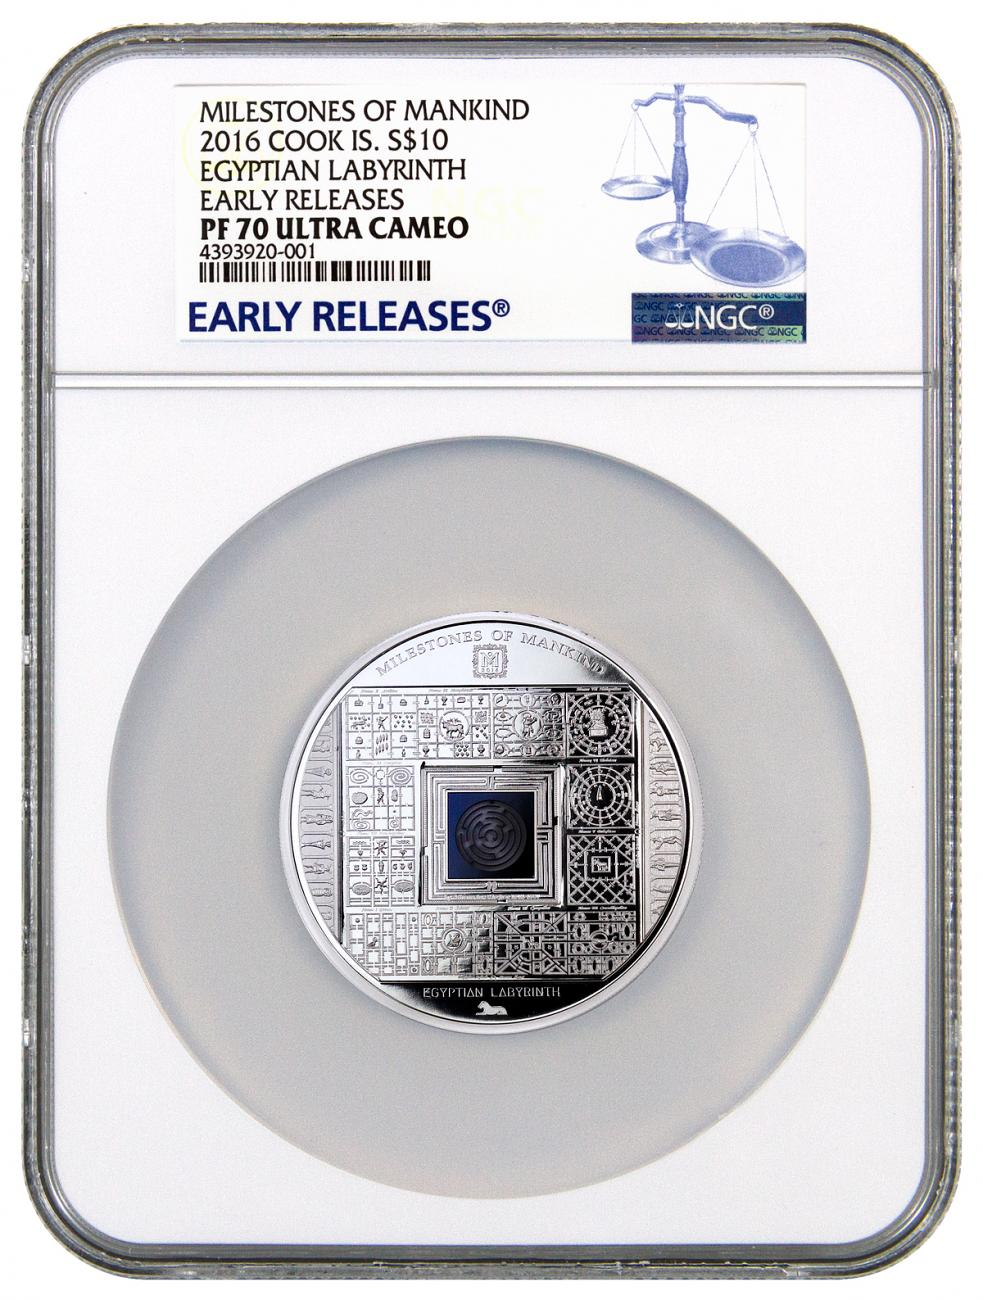 2016 Cook Islands $10 50g Proof Silver Milestones of Mankind - Egyptian Labyrinth - NGC PF70 UC Early Releases